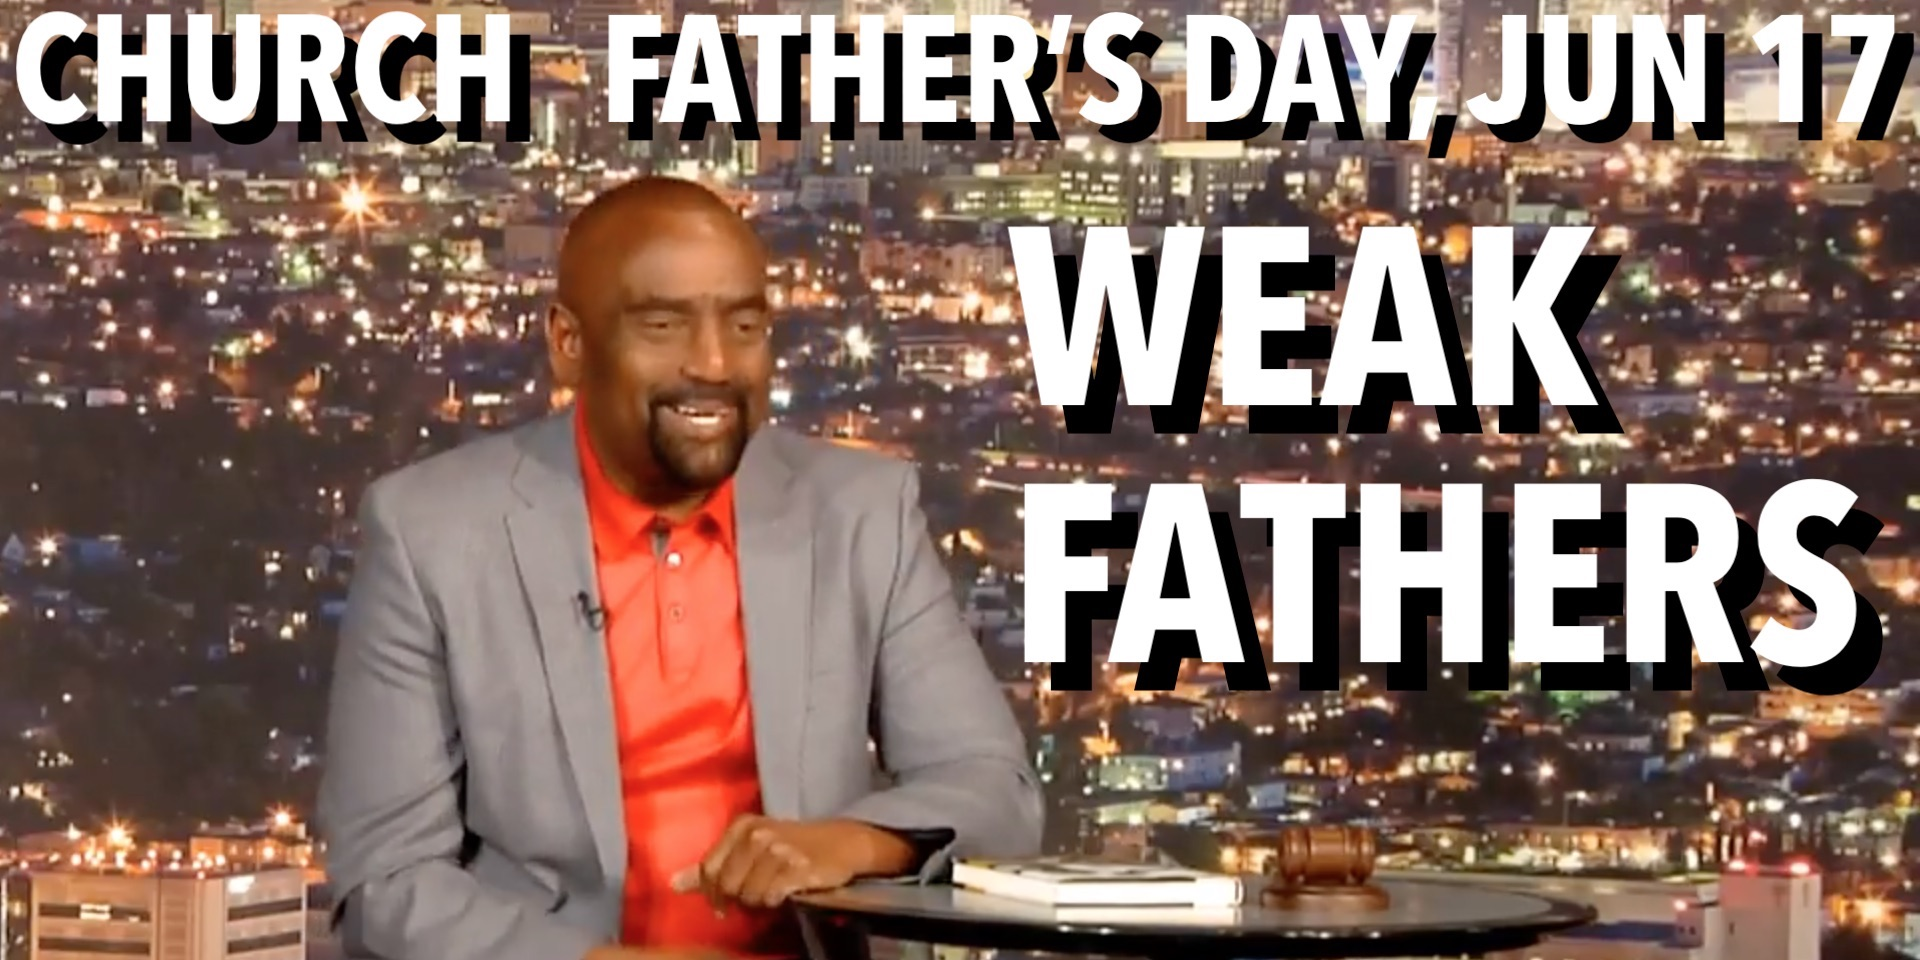 Church Father's Day: On Weak Fathers